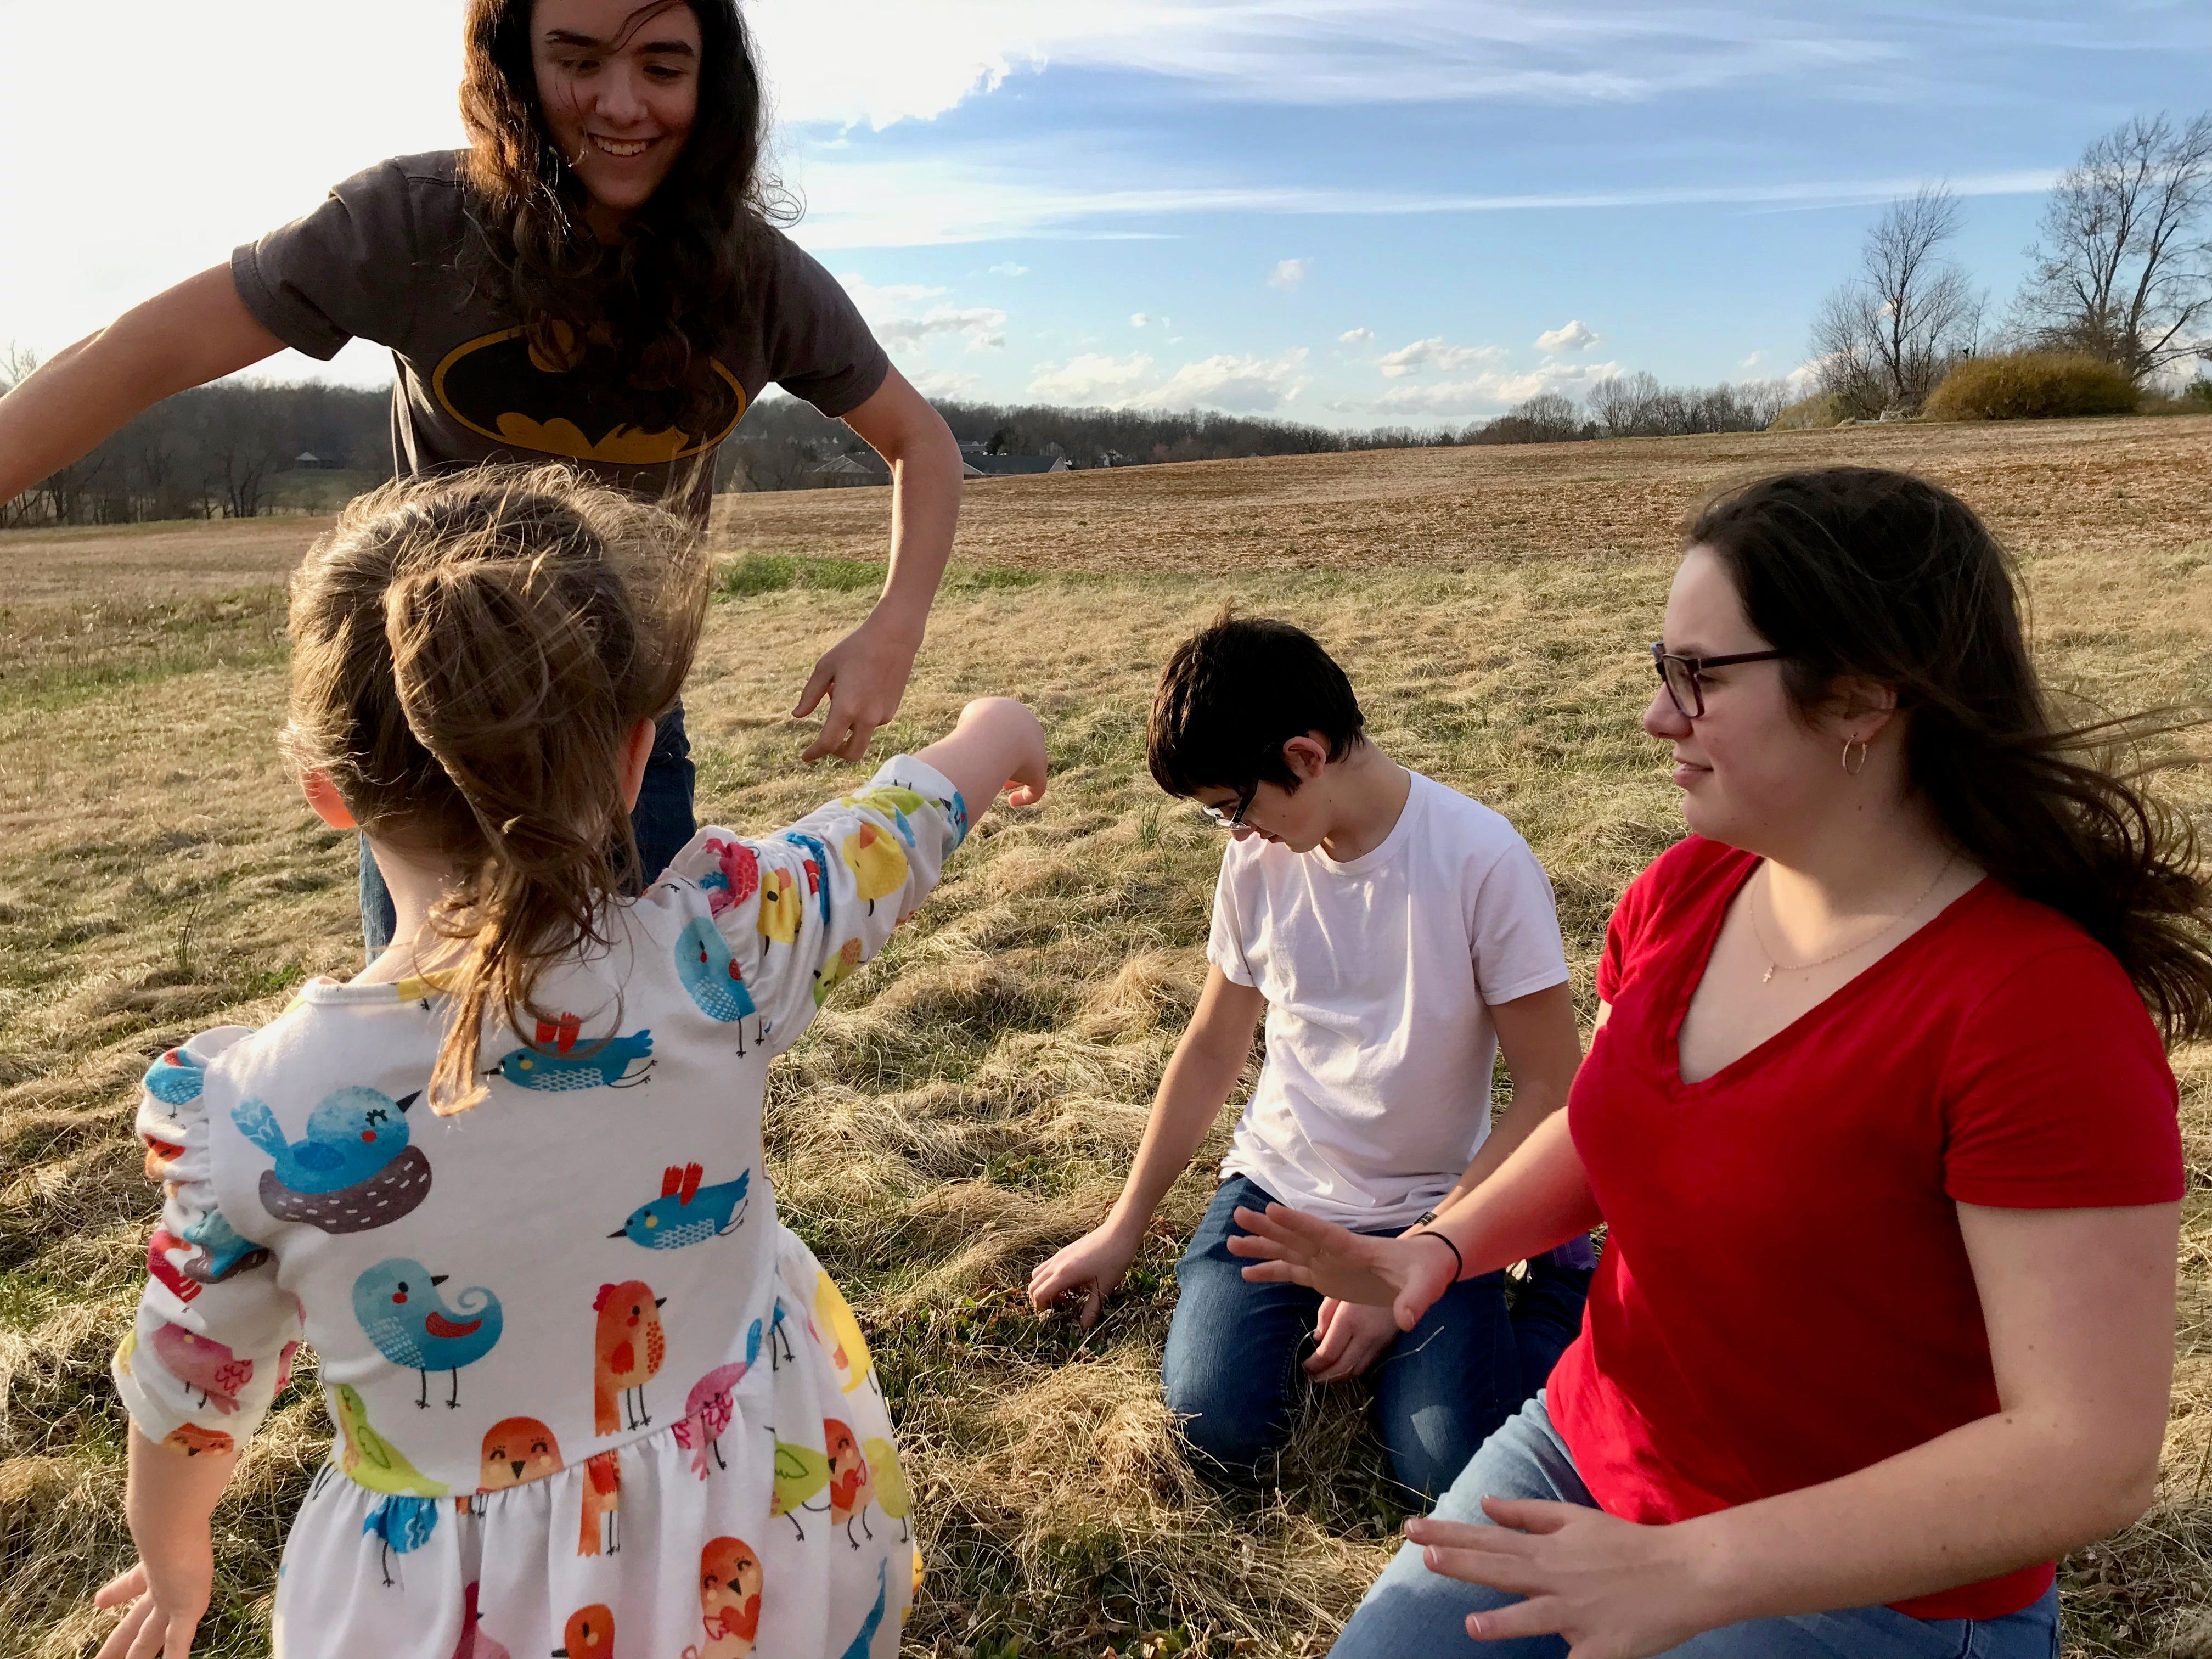 Carter Bussey, 15, Wyatt Bussey, 14, and Julia Bussey, 19, play with their sister Rebecca Bussey, 3, in the backyard of their home in Ladd, Virginia, on Friday, March 15, 2019. Rebecca Bussey has the rare disease Systemic Juvenile Idiopathic Arthritis.